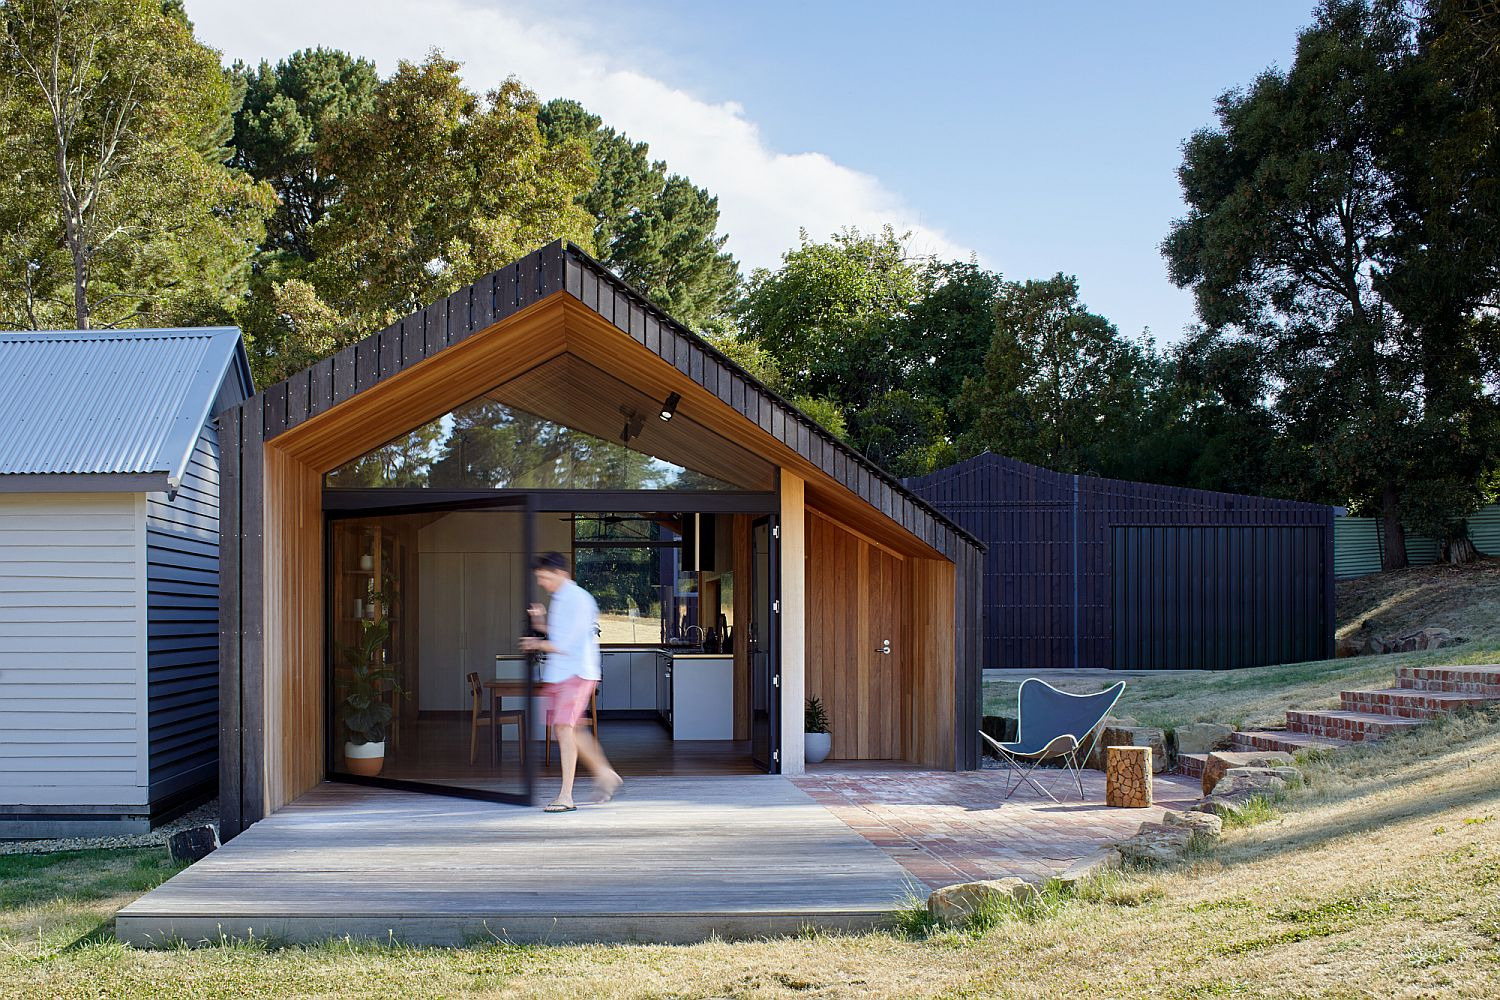 New-extension-becomes-a-gateway-between-the-interior-and-the-rural-landscape-outside